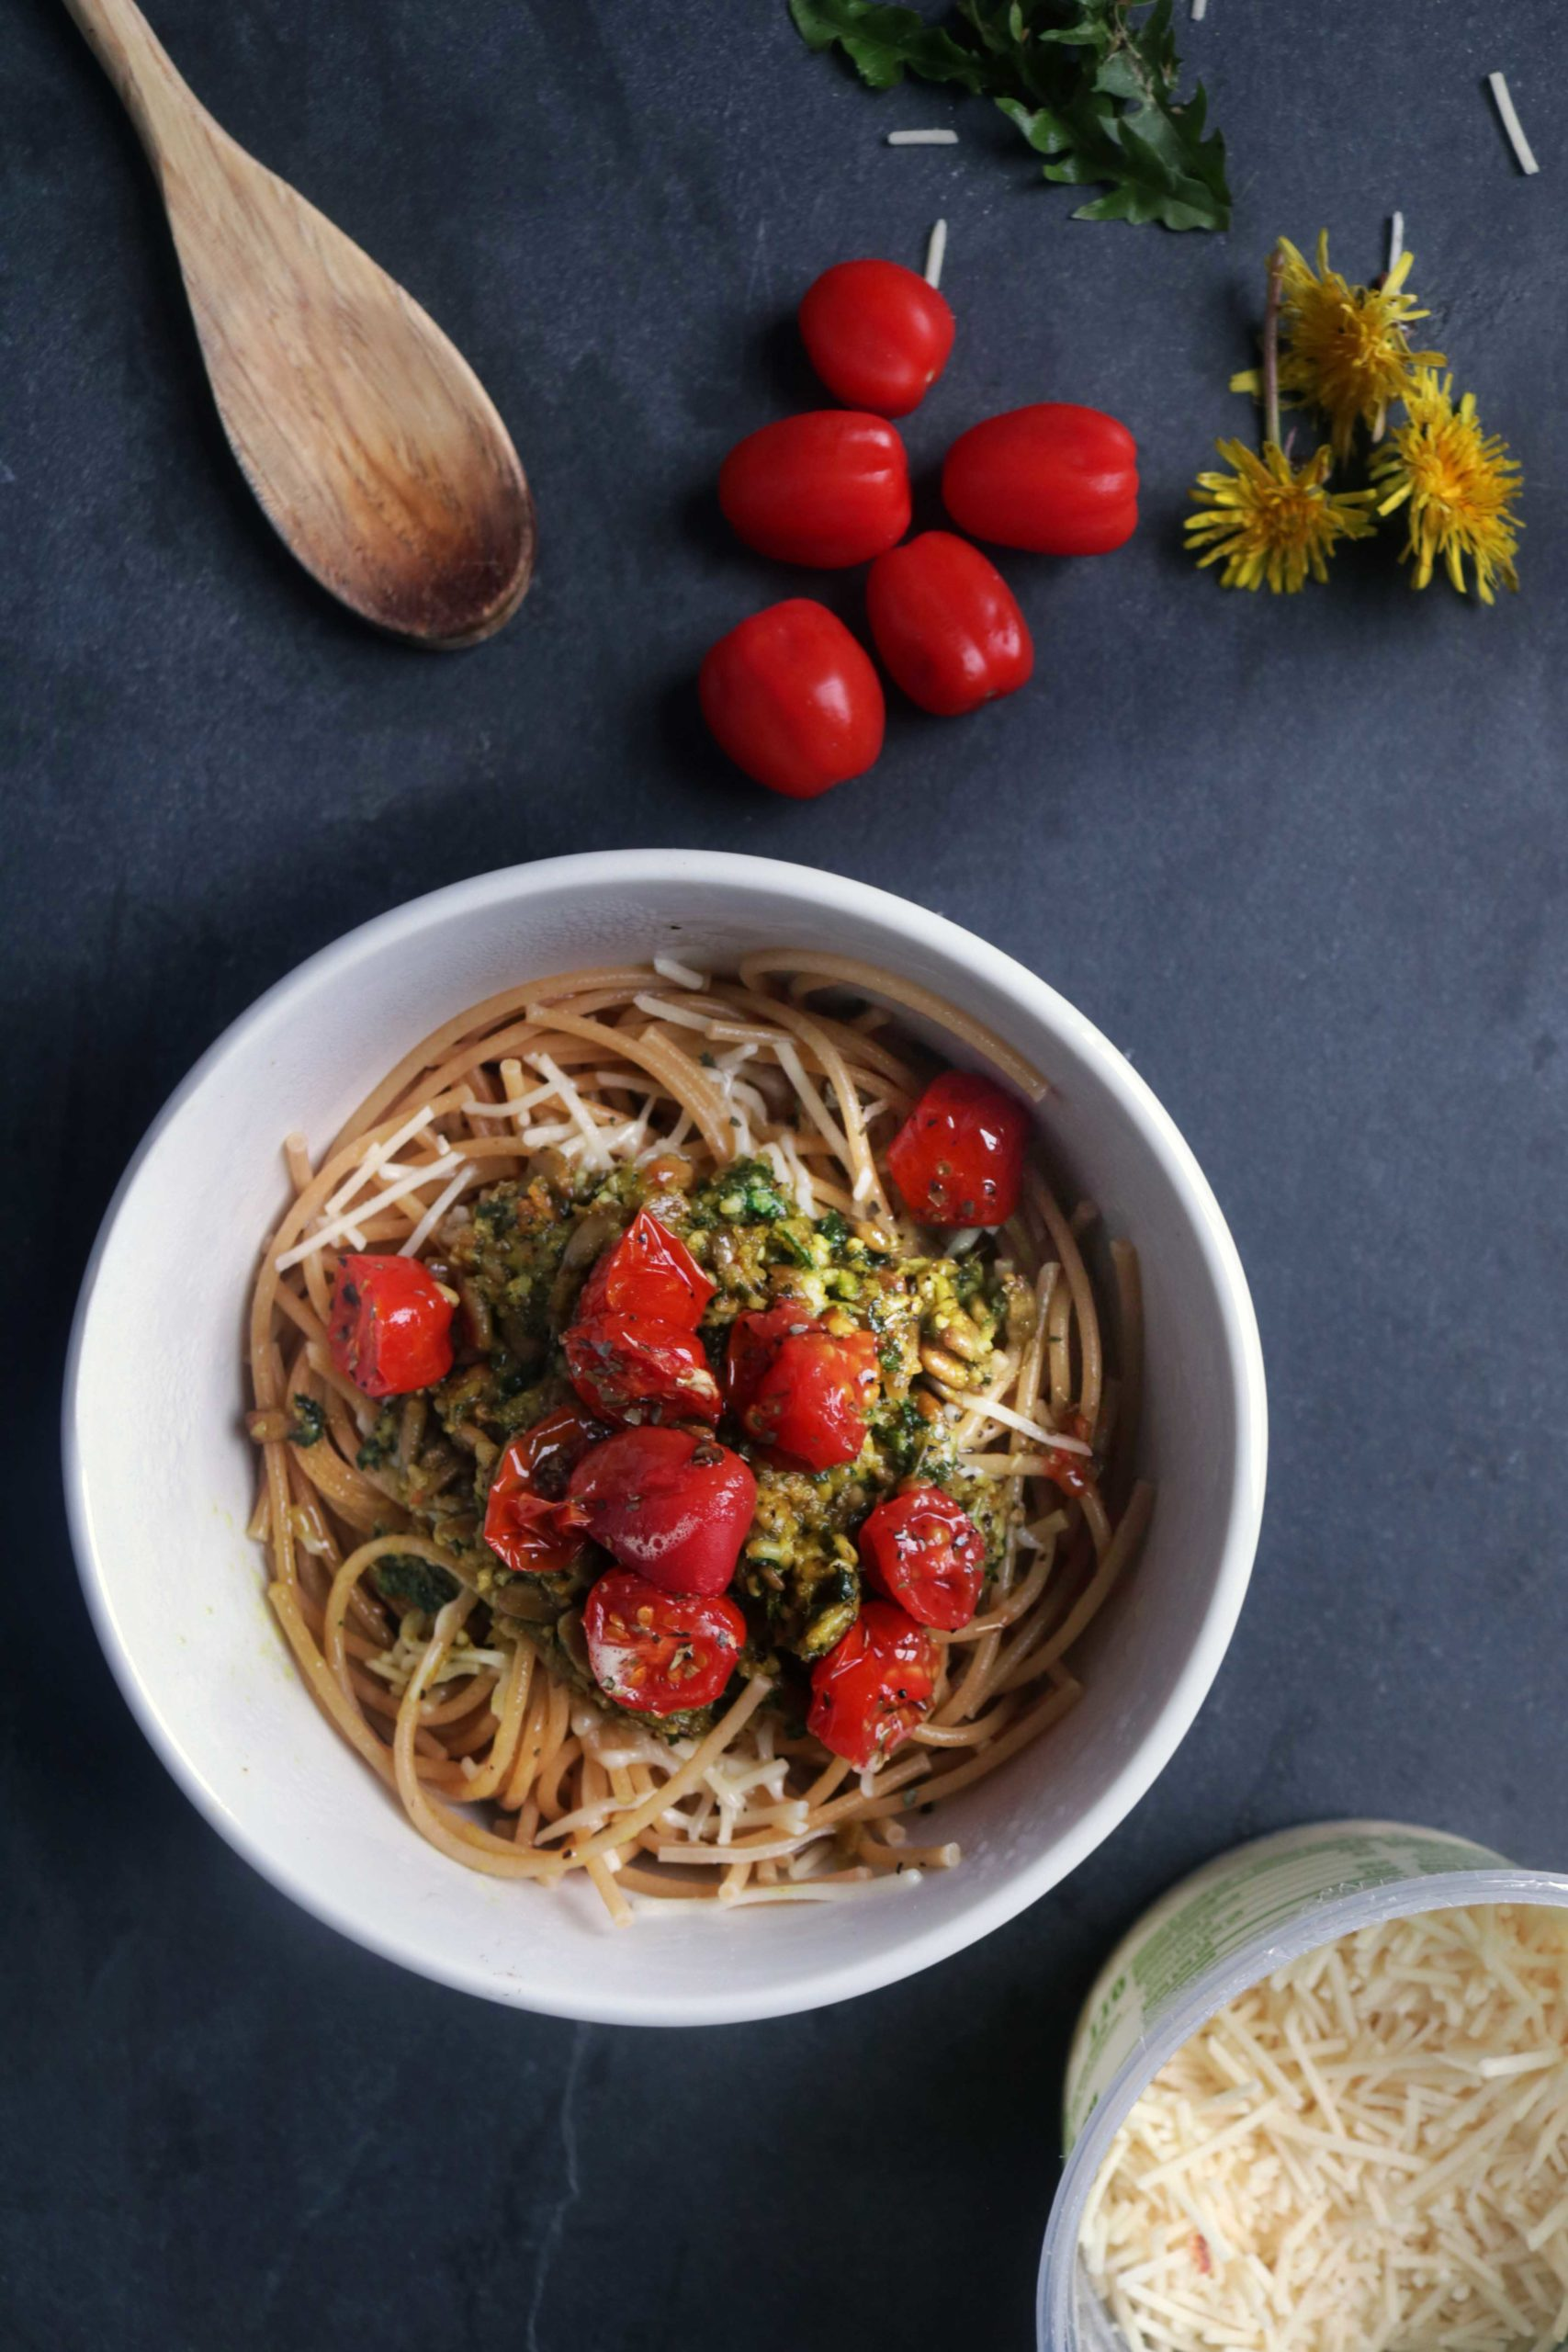 Wildcrafted dandelion pesto with herb roasted tomatoes.